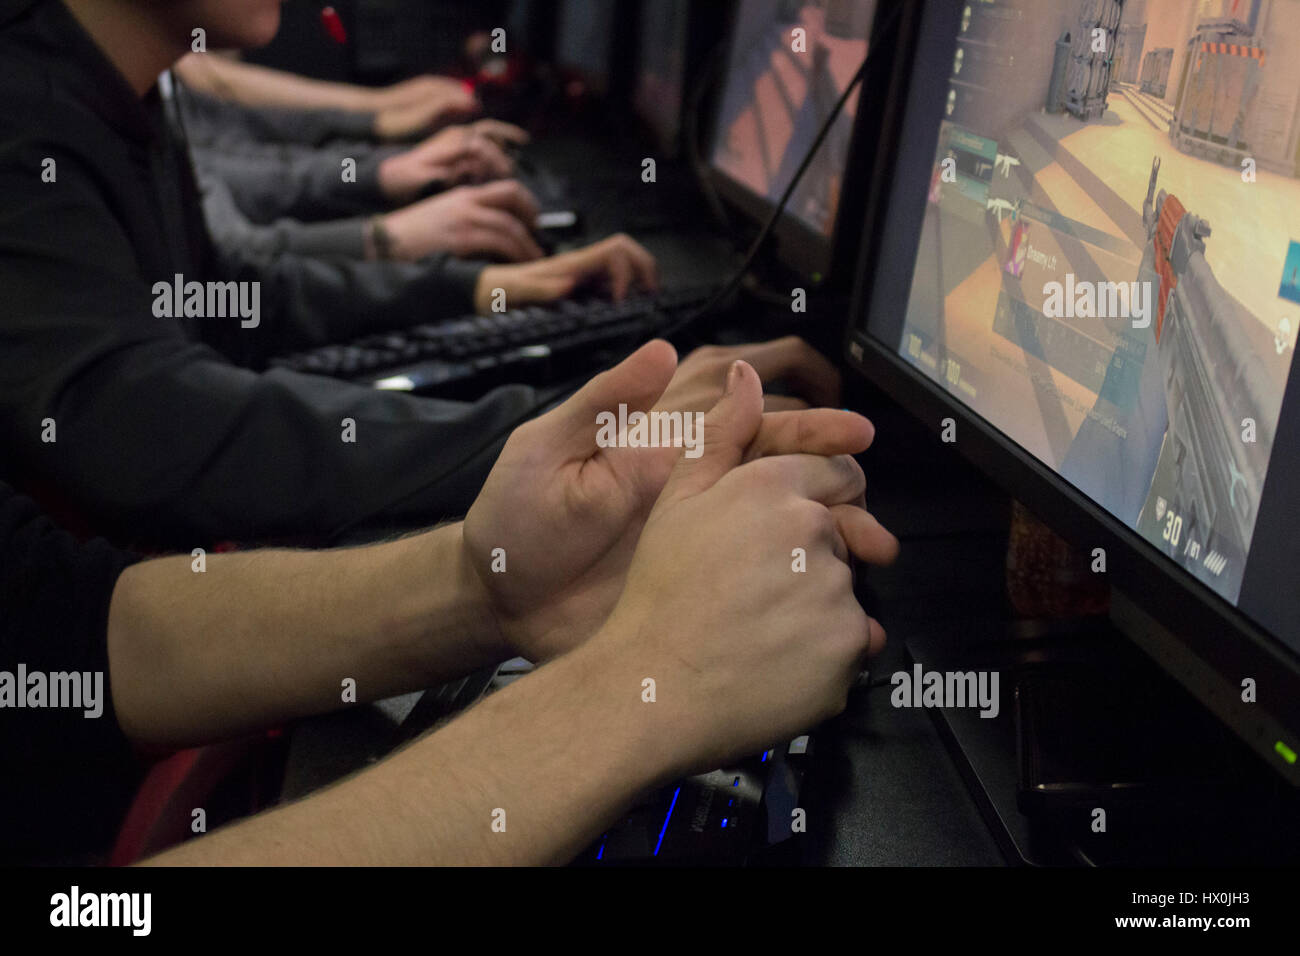 Les équipes jouent en 5V5 Counter Strike global offensive au réseau local talk and surf gaming à Photo Stock